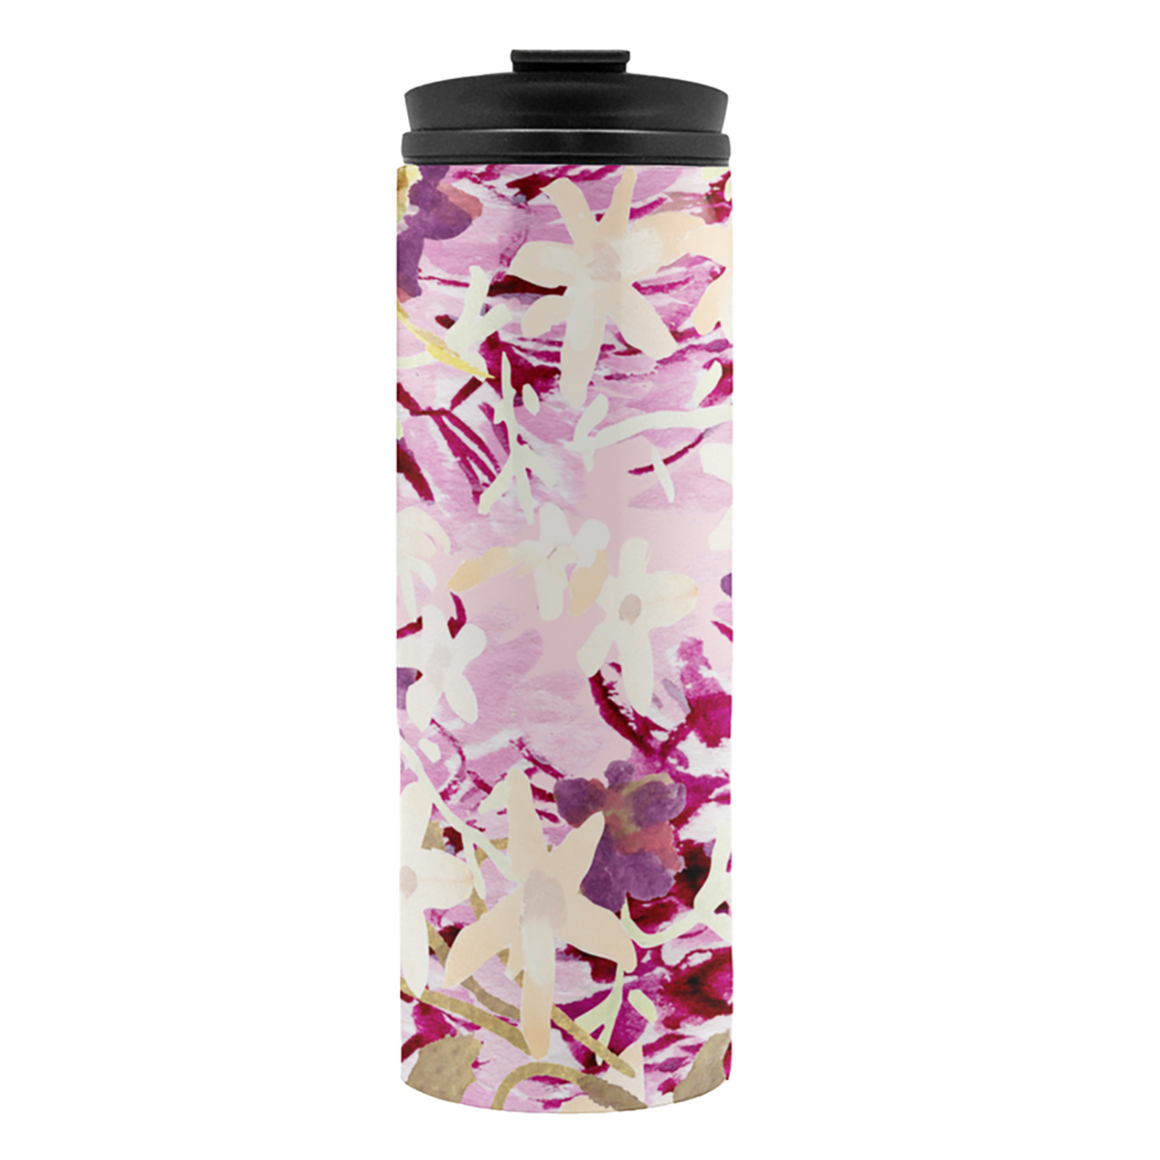 DAHLILAH TUMBLER - Tumbler - Dreams After All